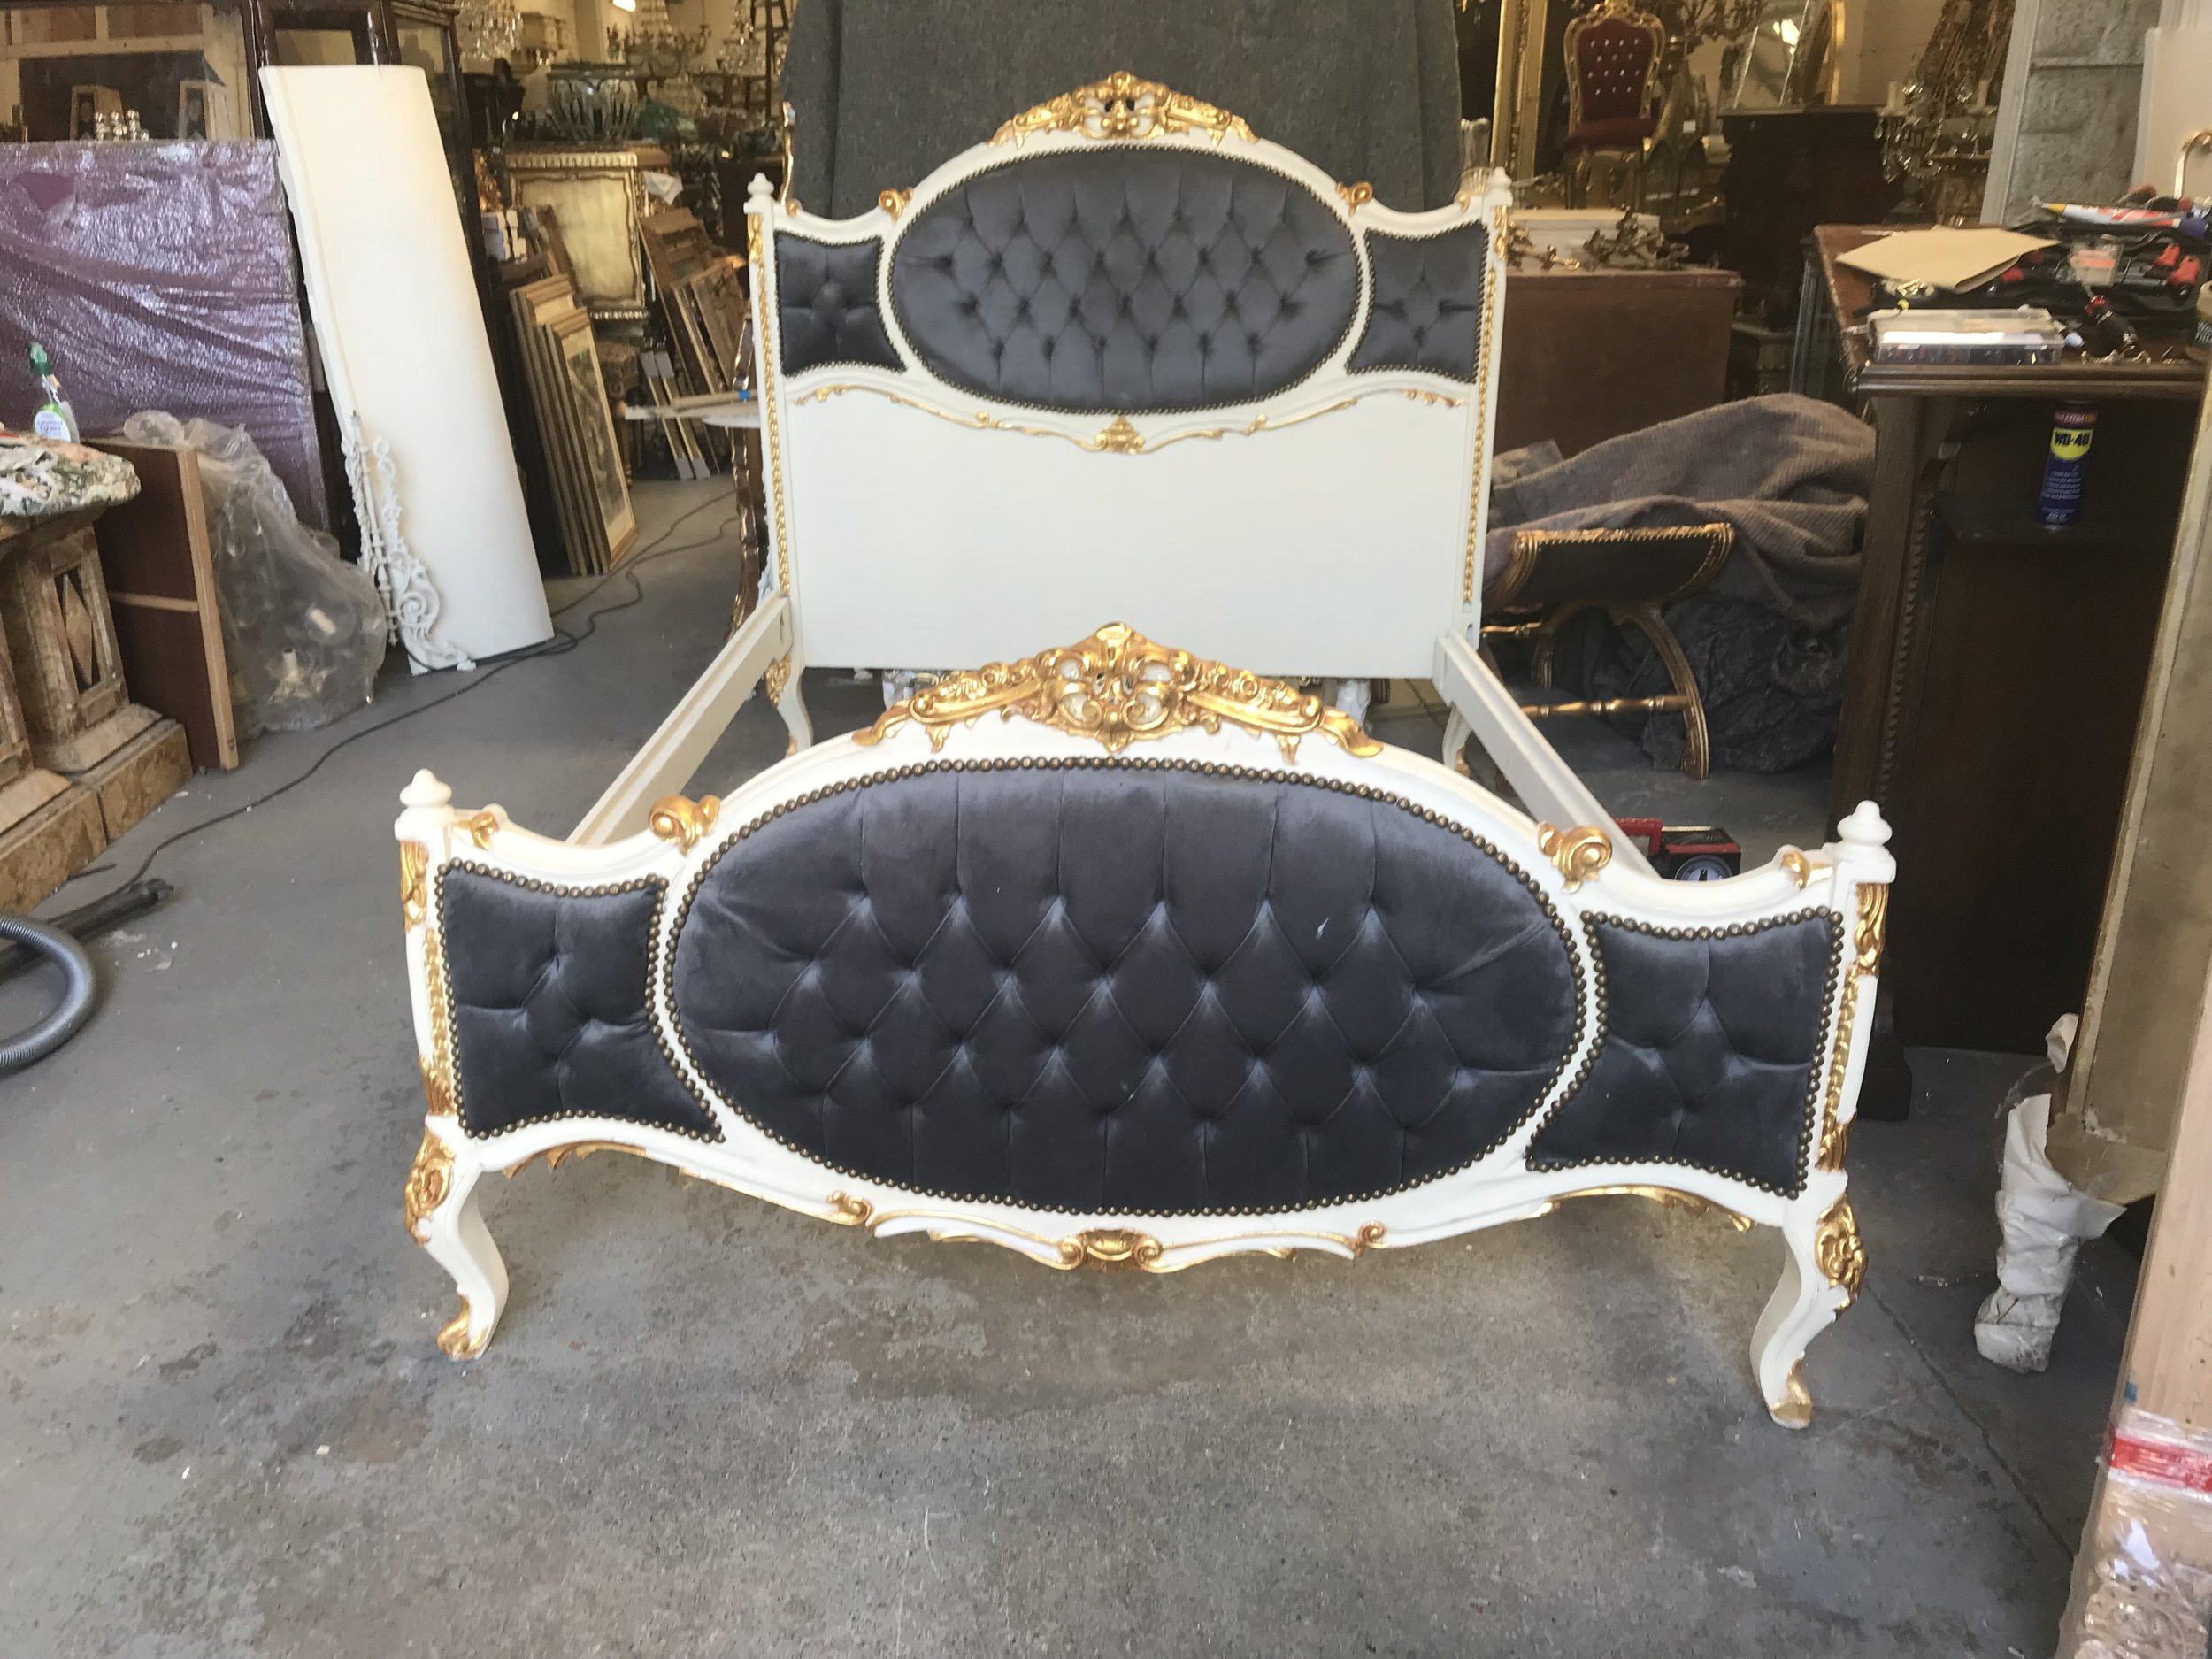 Antique bed that has been refurbished